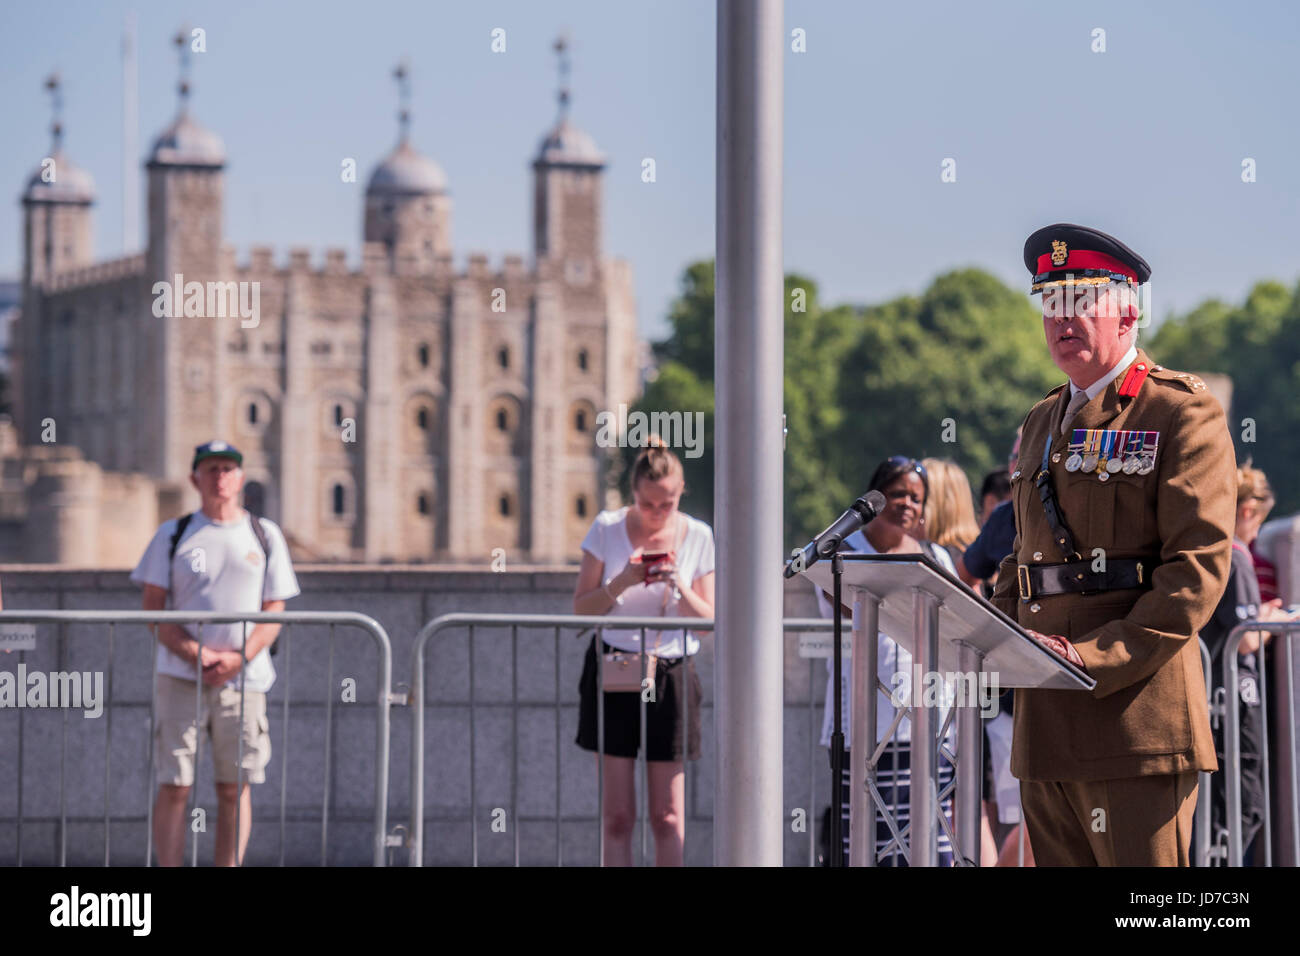 London, UK. 19th June, 2017. Brigadier Michael McGovern - On behalf of the Mayor Sadiq Khan (who was called to a - Stock Image